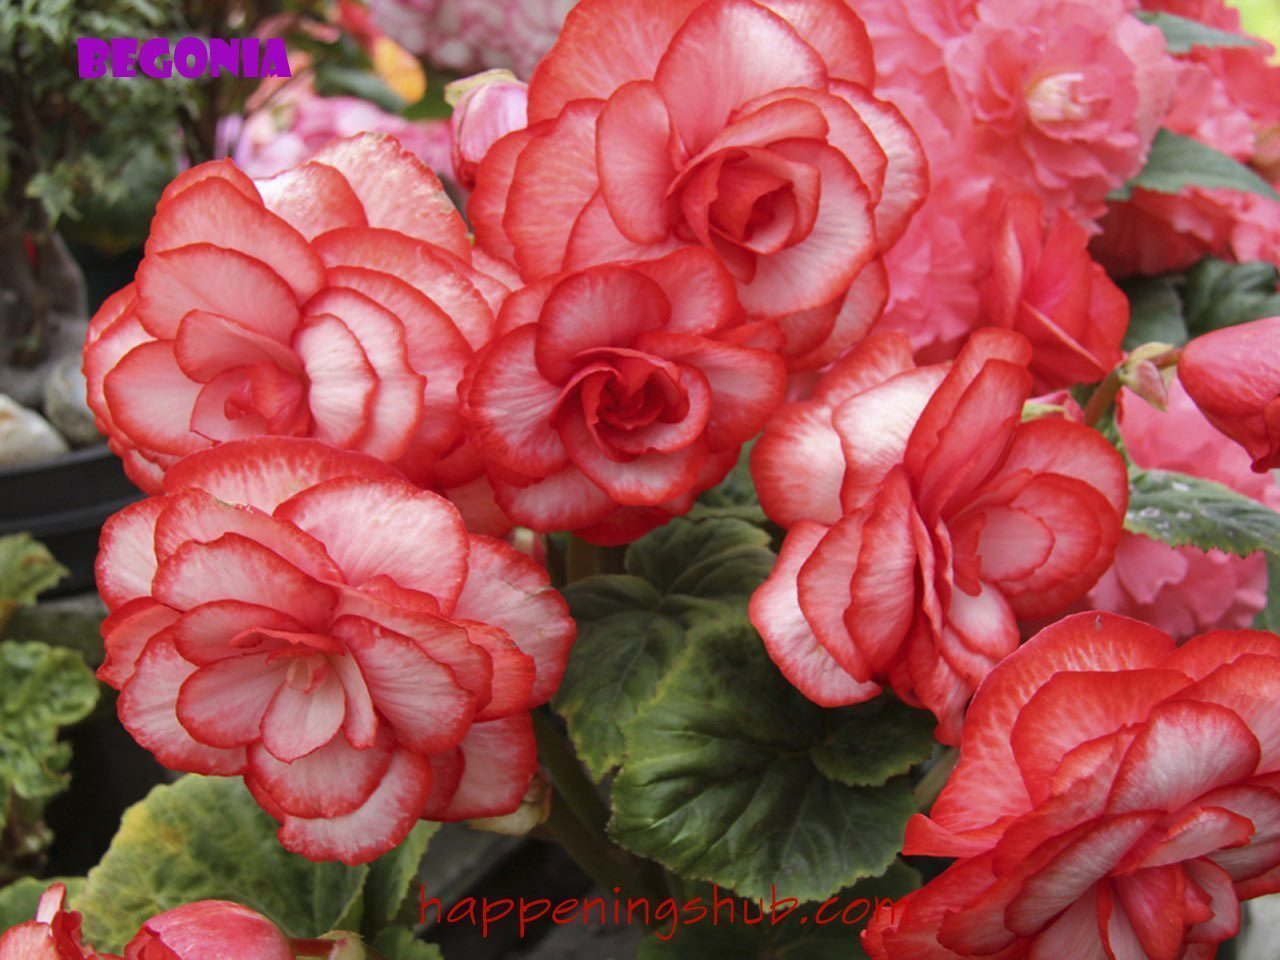 wallpaper-begonia-flowers-r